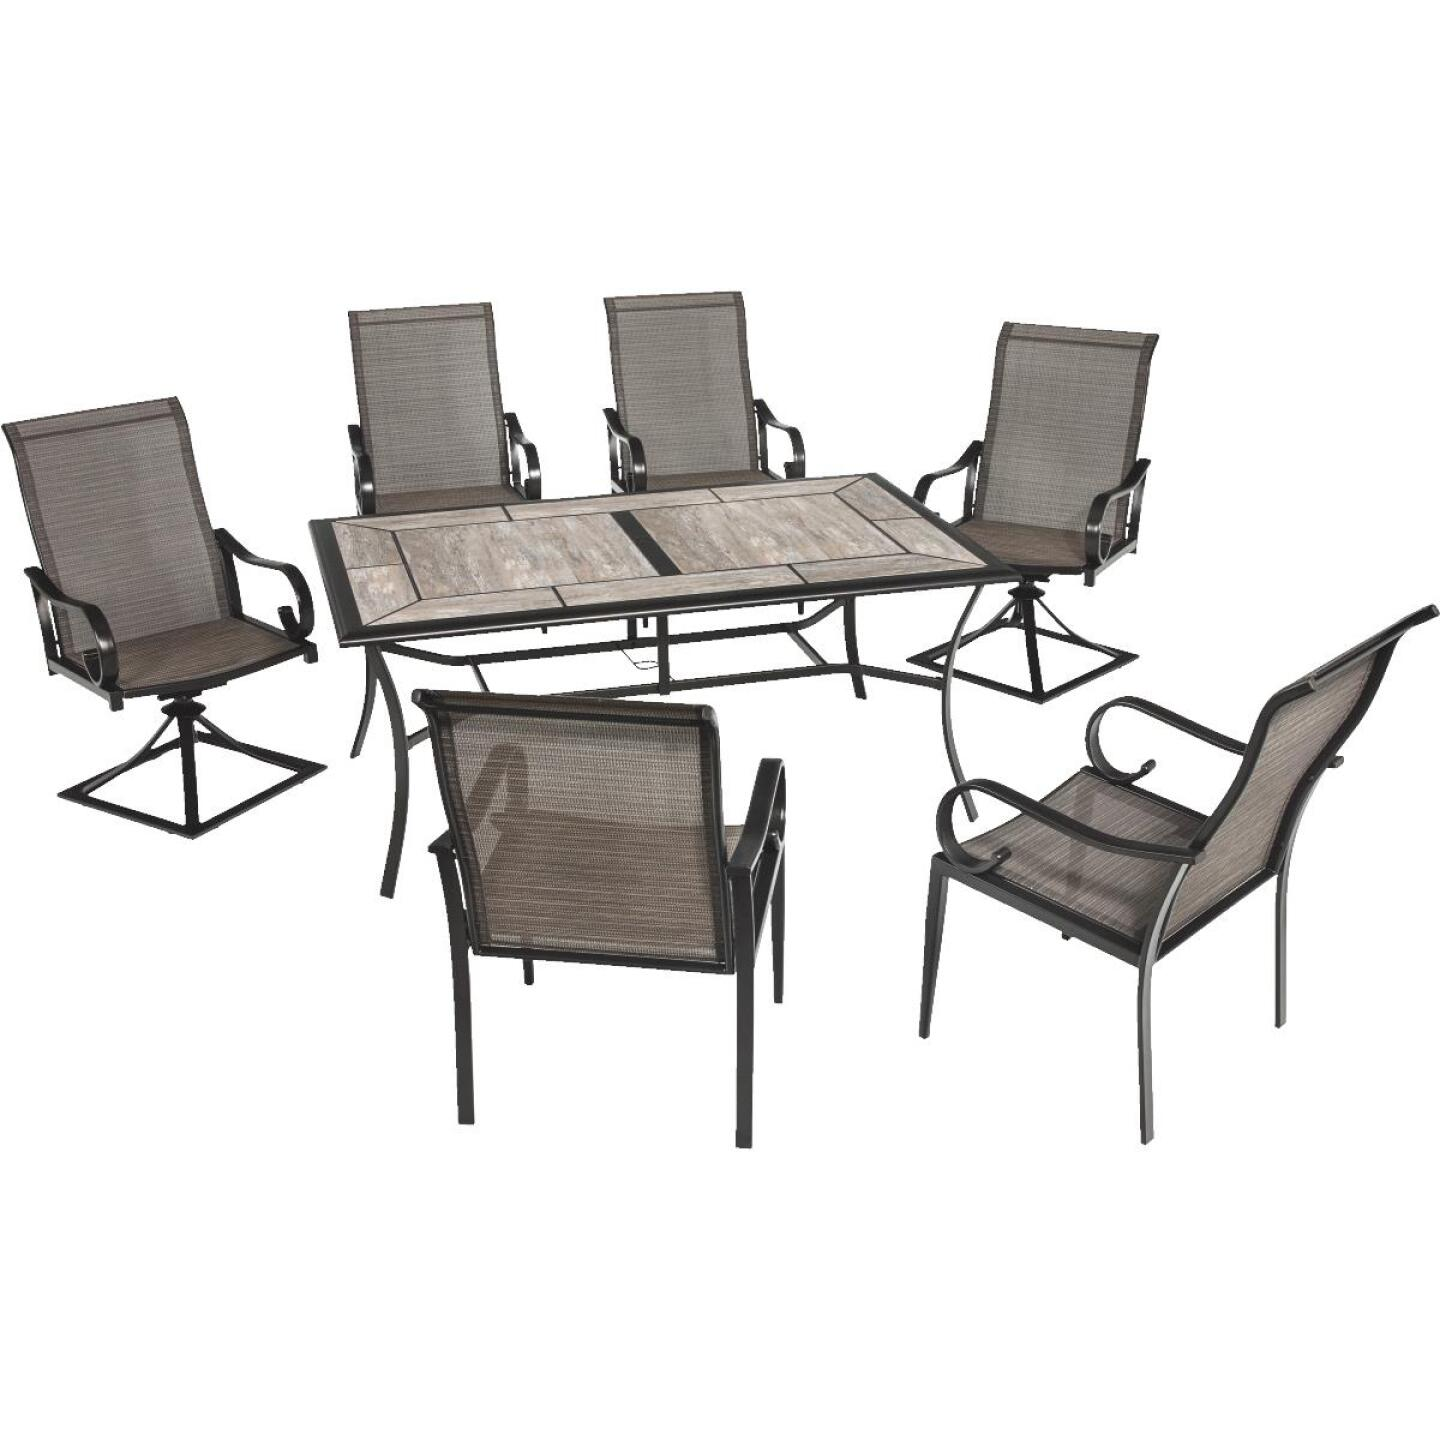 Outdoor Expressions Berkshire 7-Piece Dining Set Image 63